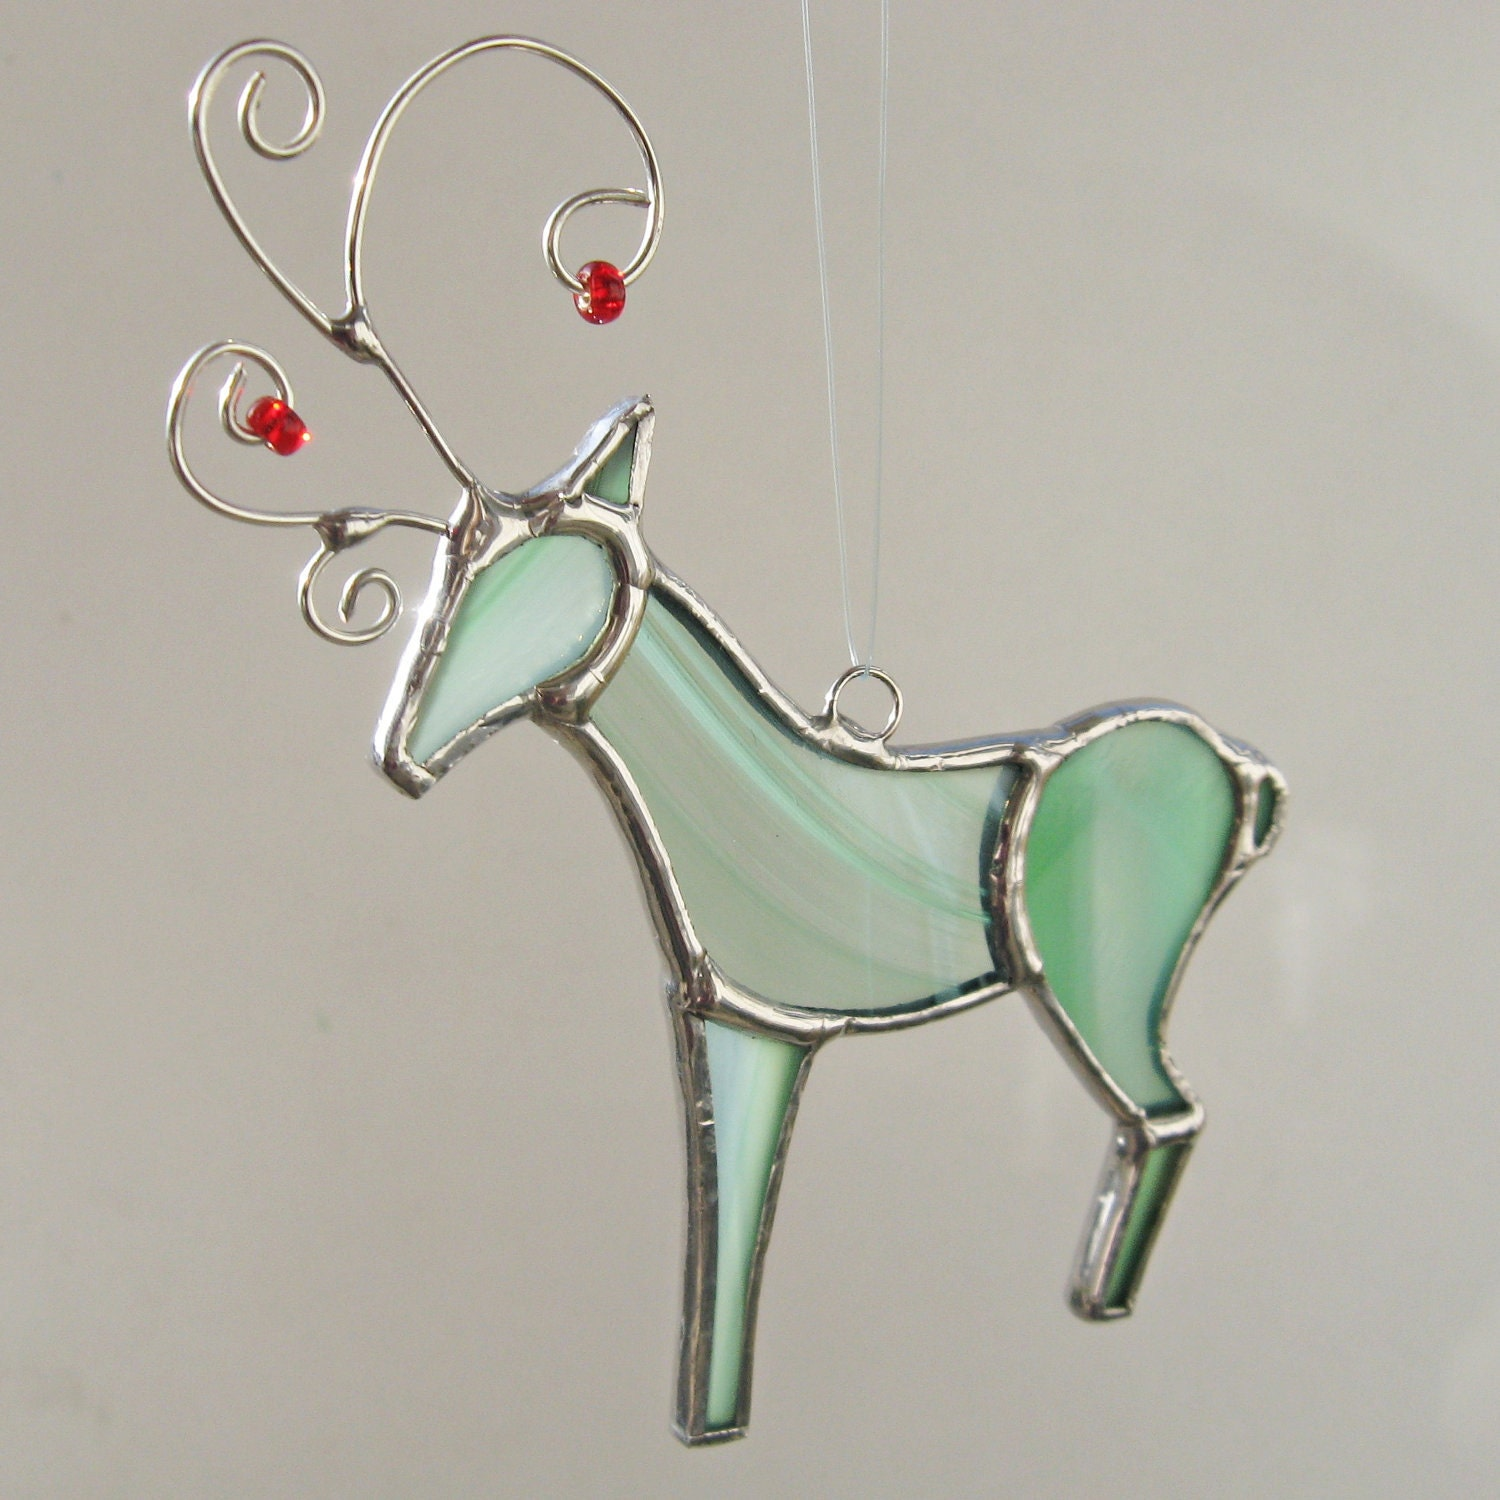 Mint green stained glass reindeer ornament by fivesparrows on etsy